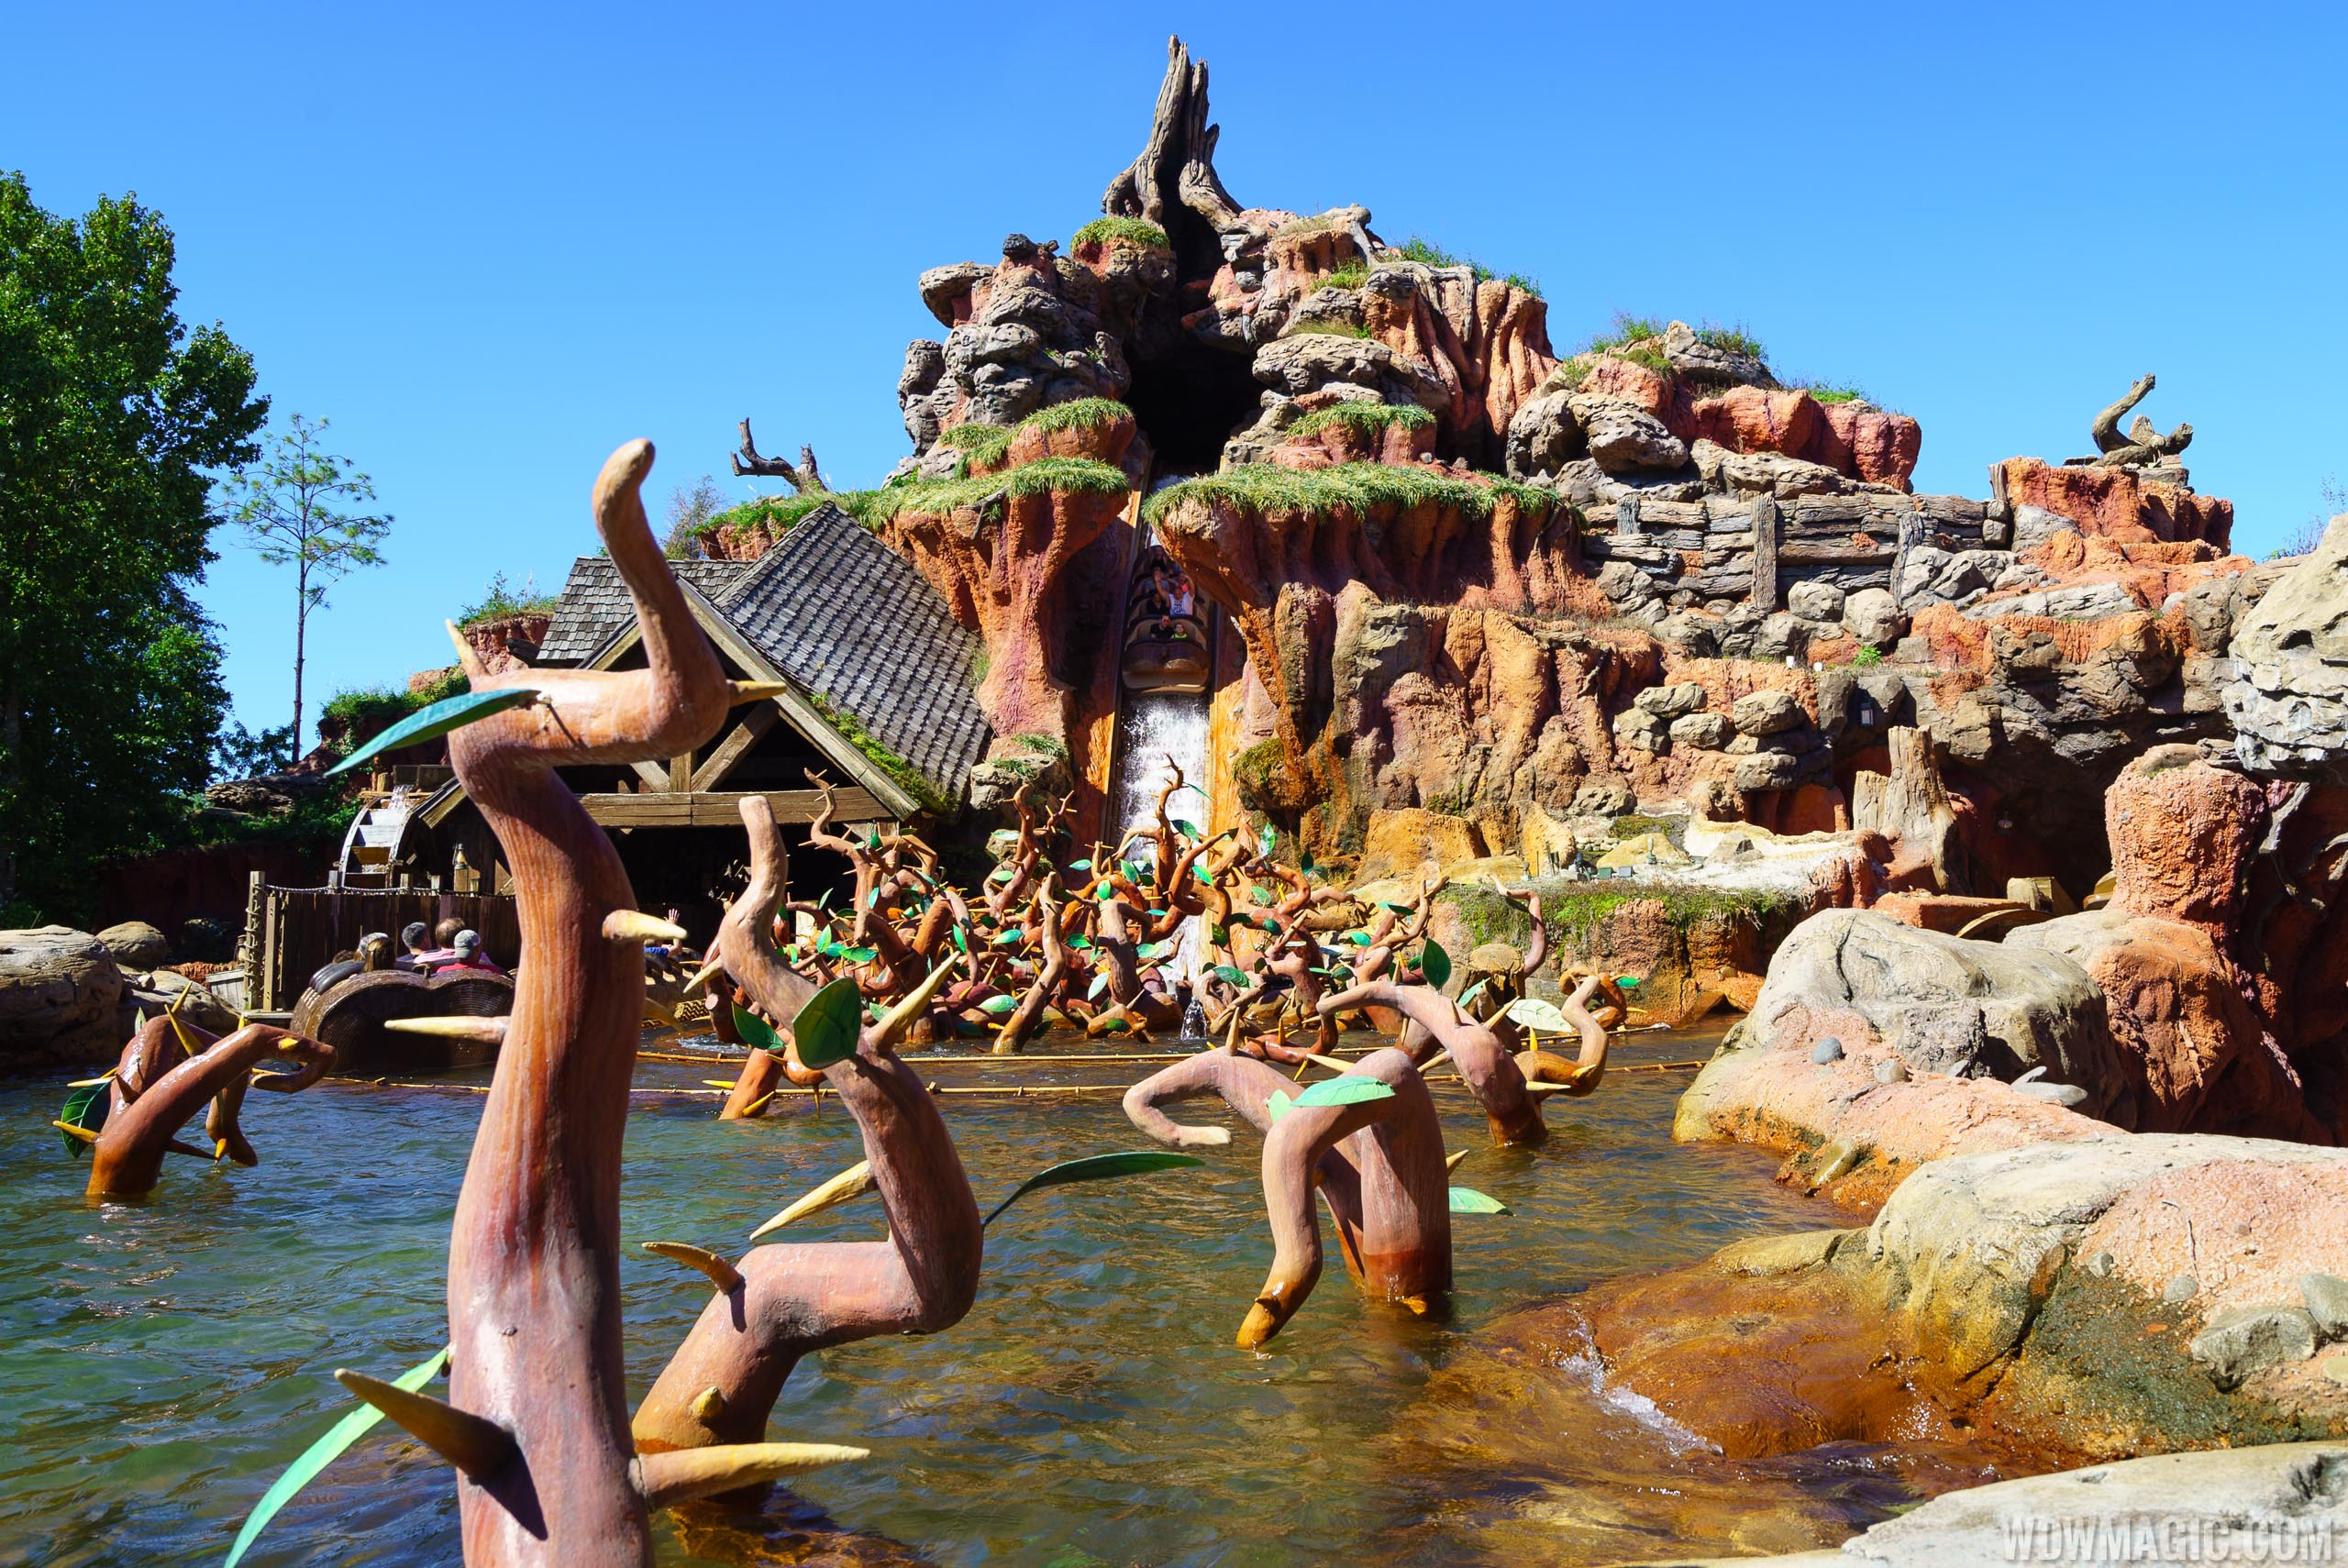 VIDEO - Take a ride-through of the refurbished Splash Mountain